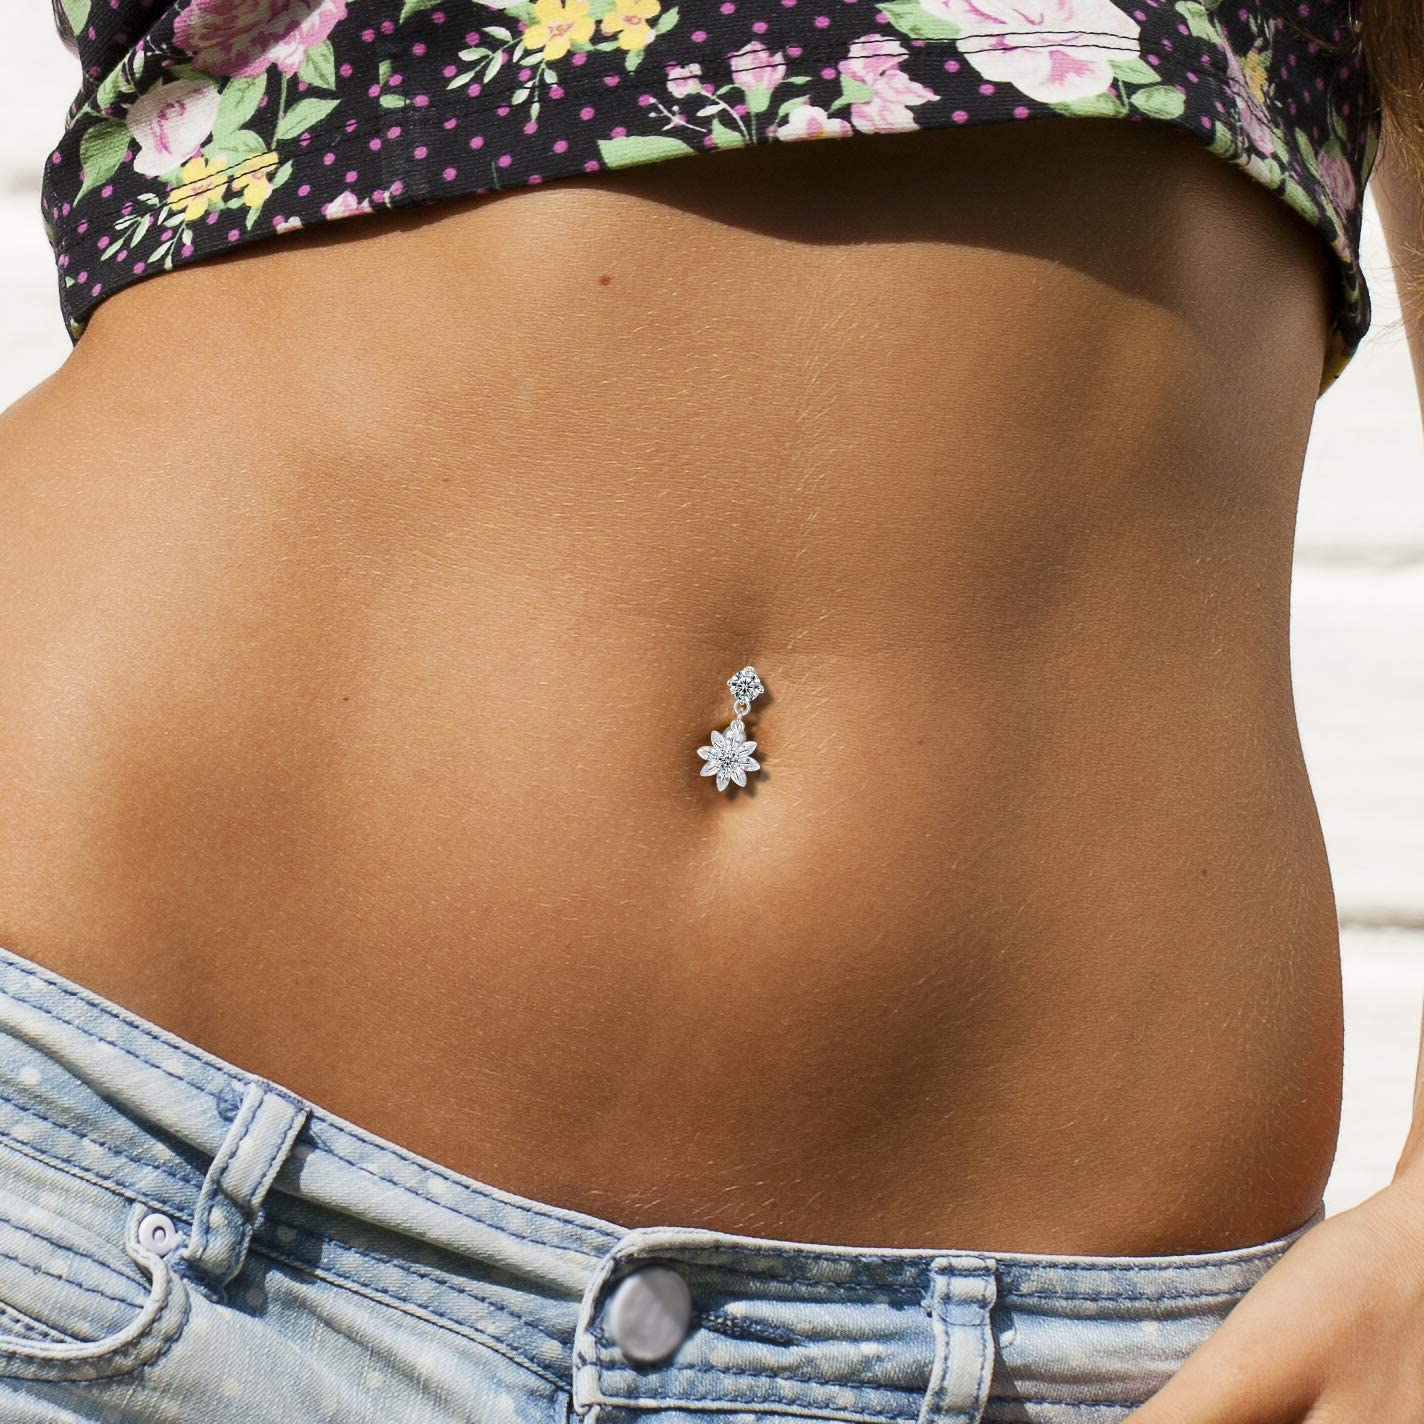 Details about  /BG/_ 1Pc Women Rhinestone Round Dangle Navel Ring Belly Body Piercing Jewelry Pre